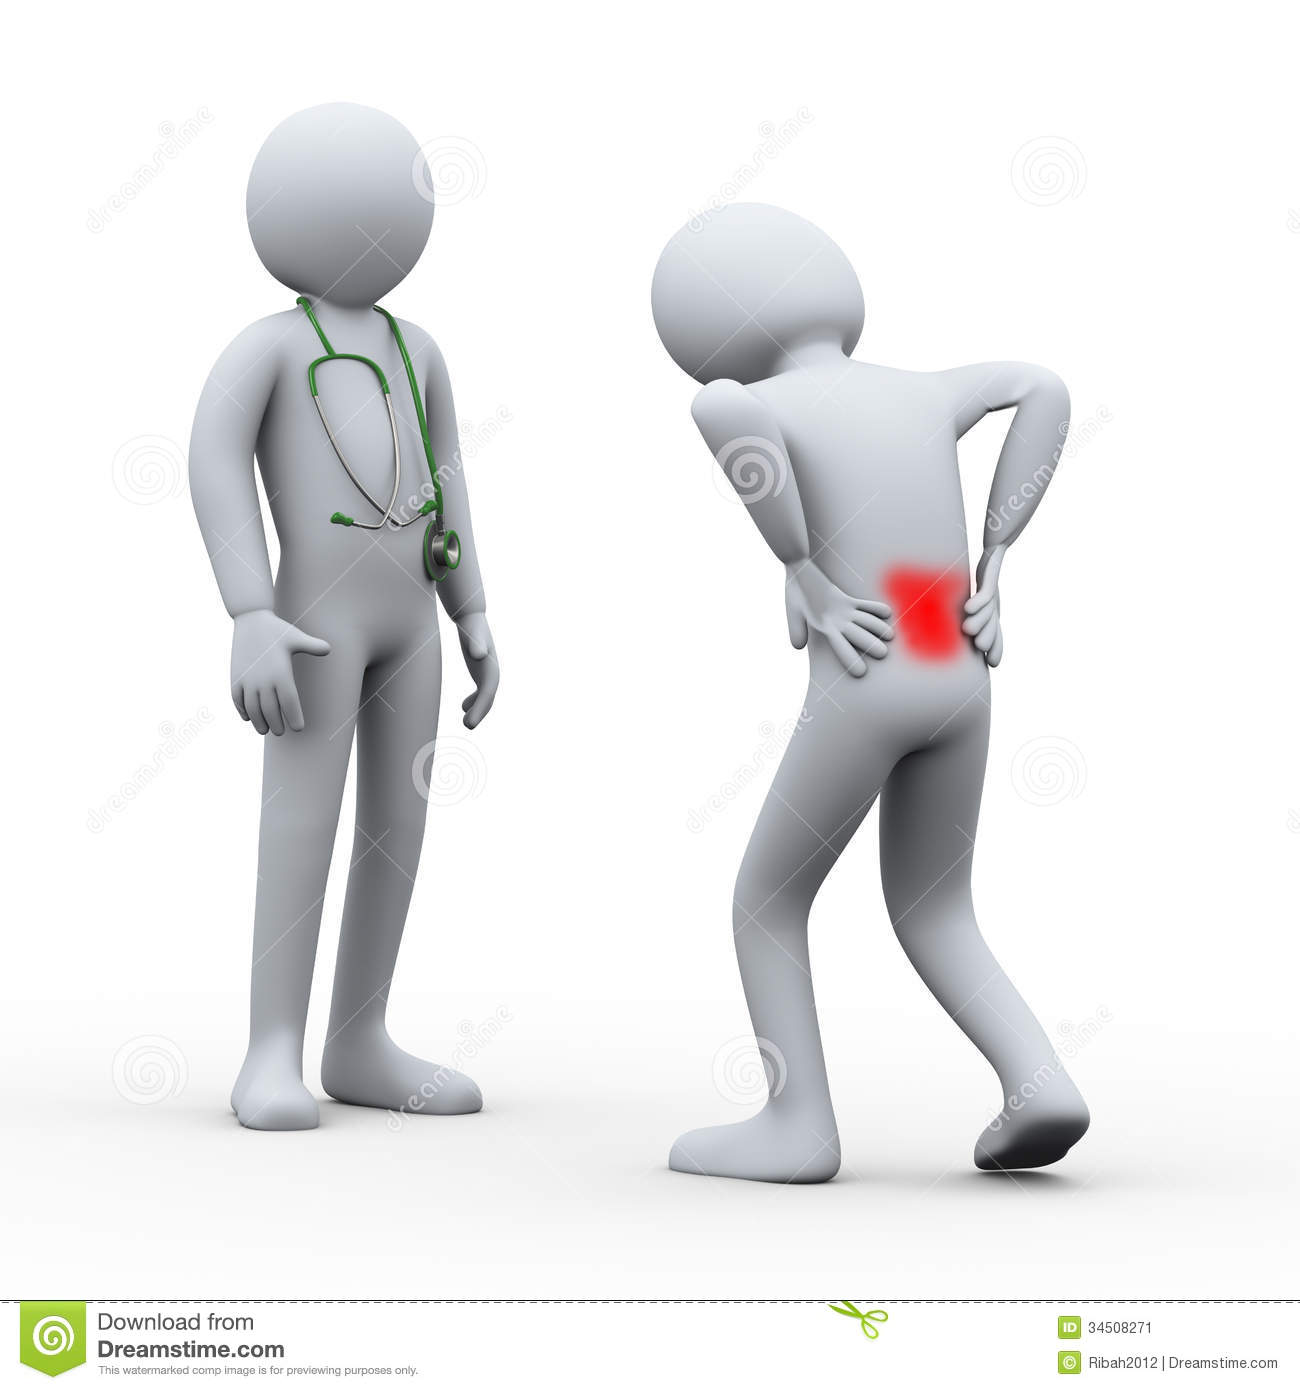 3d Person With Back Pain Visiting Doctor Stock Image   Image  34508271